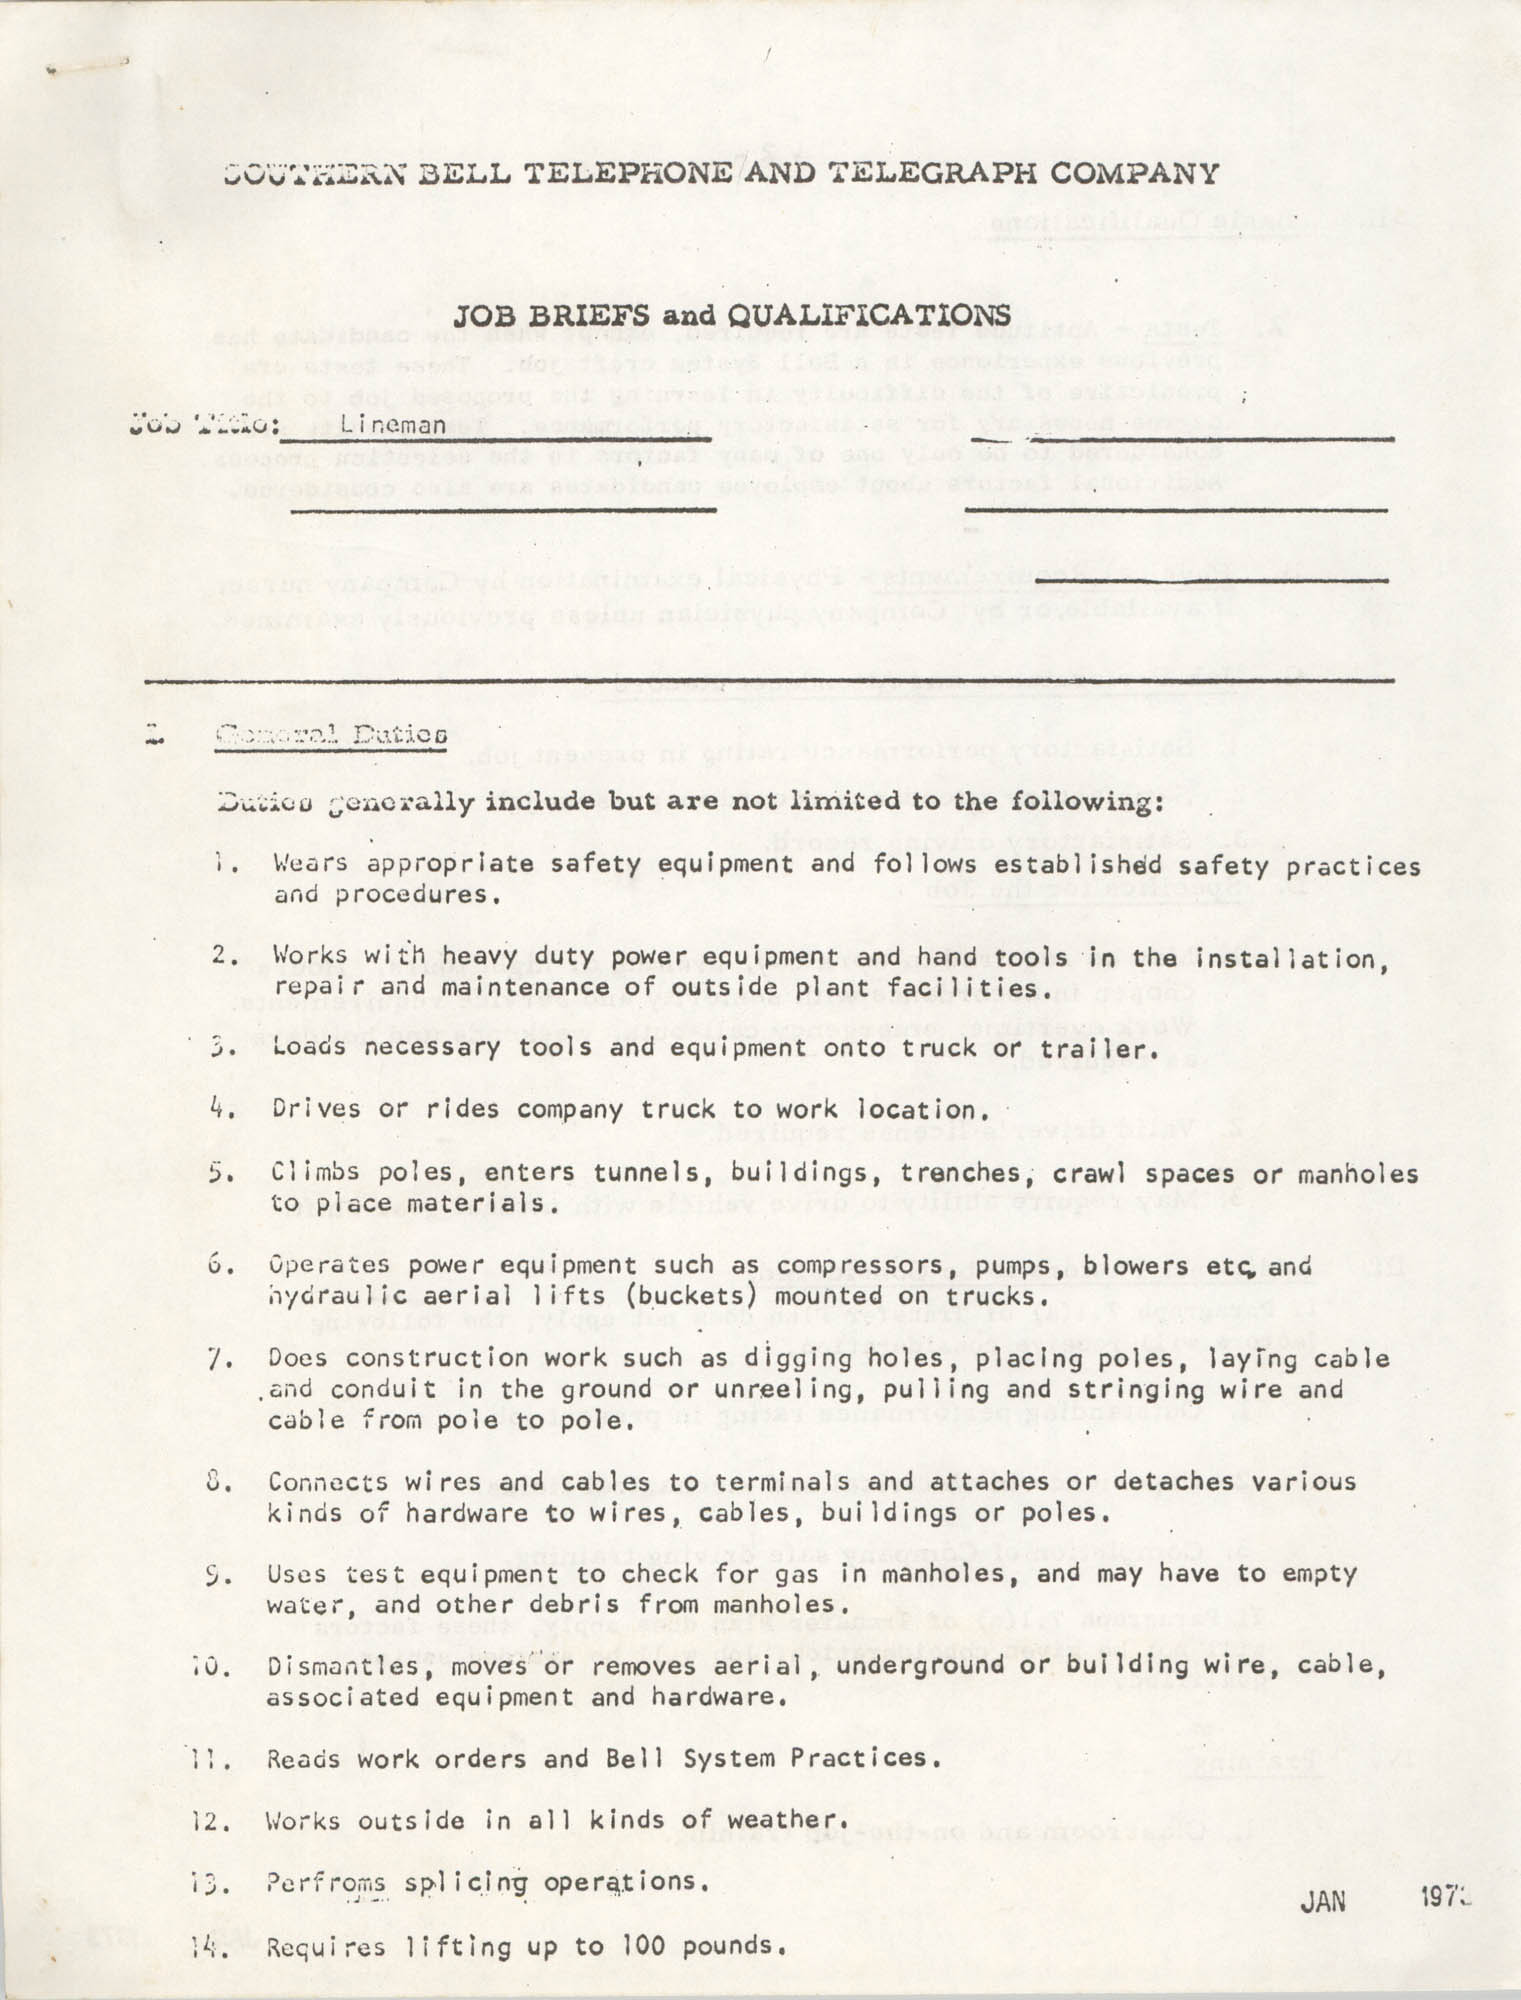 Southern Bell Telephone and Telegraph Company Job Briefs and Qualifications, Lineman, Page 1